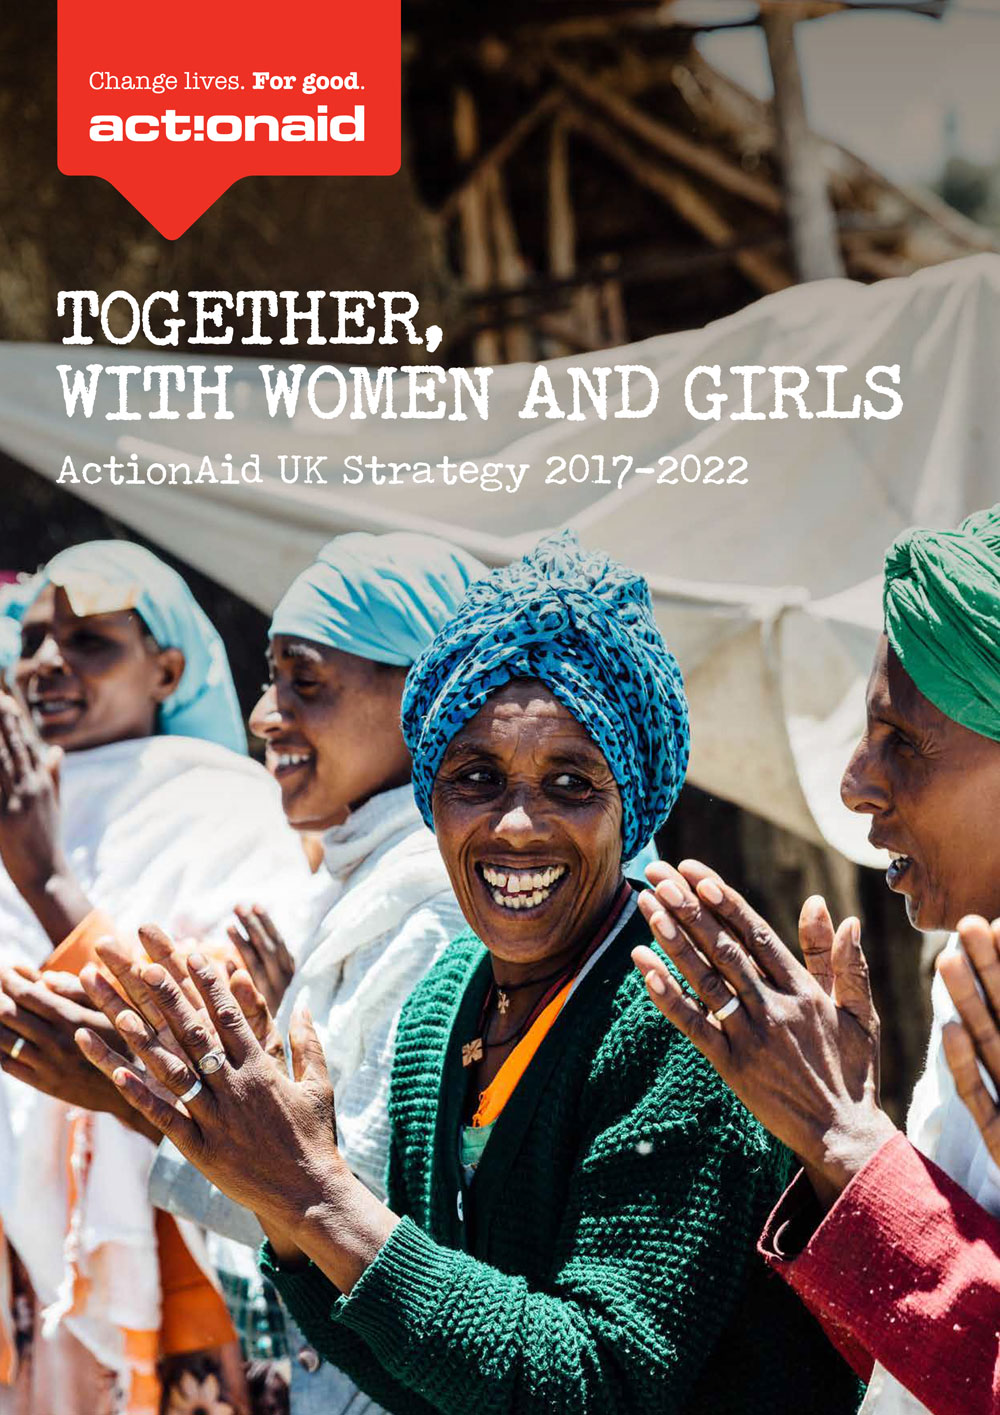 Together, with women and girls